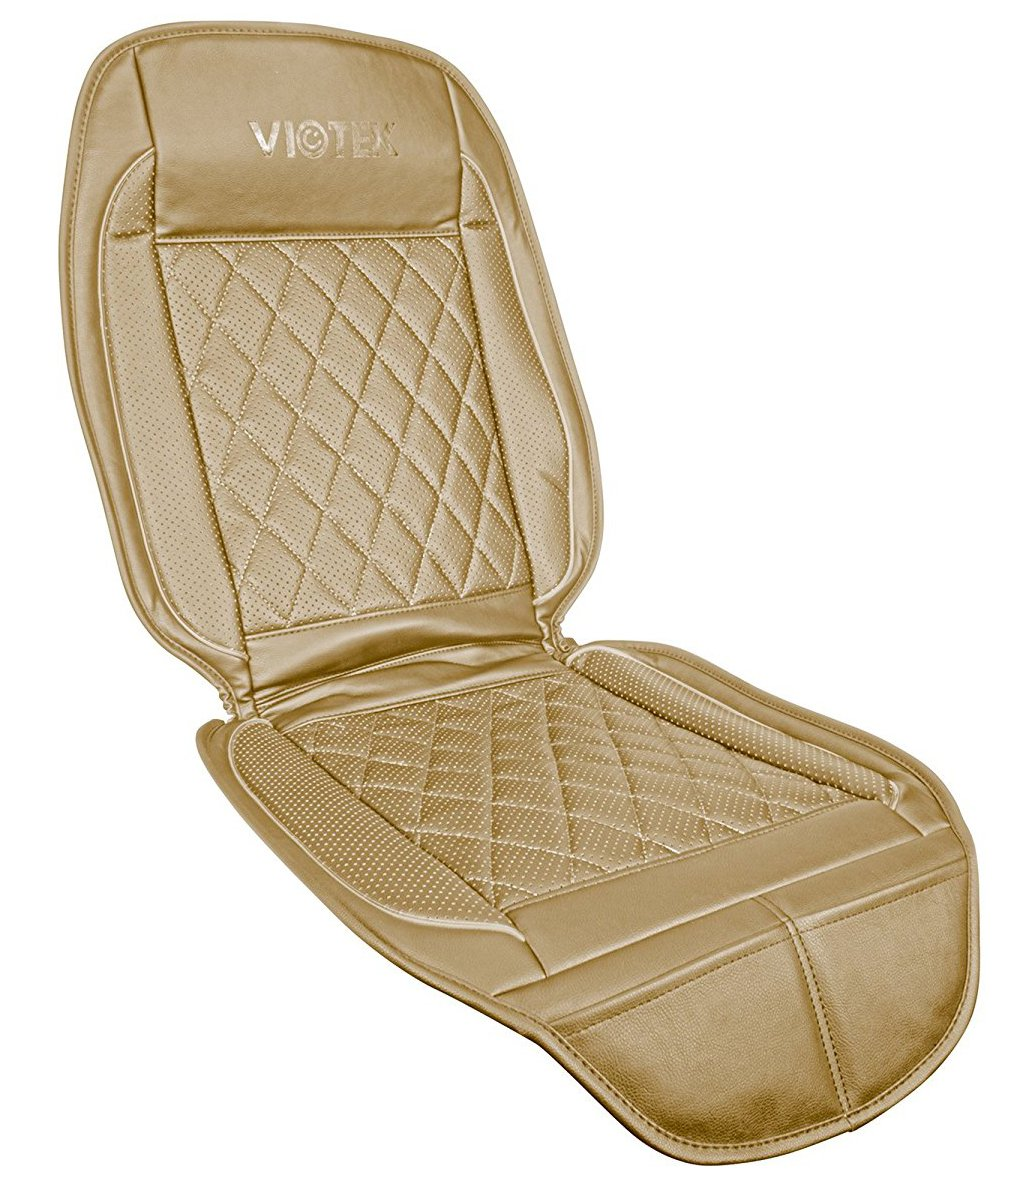 Viotek V2 Cooled Luxury Car Seat Cover – Tru-Comfort Climate Control. Cooling Seat Cover with Wireless Remote (Tan)